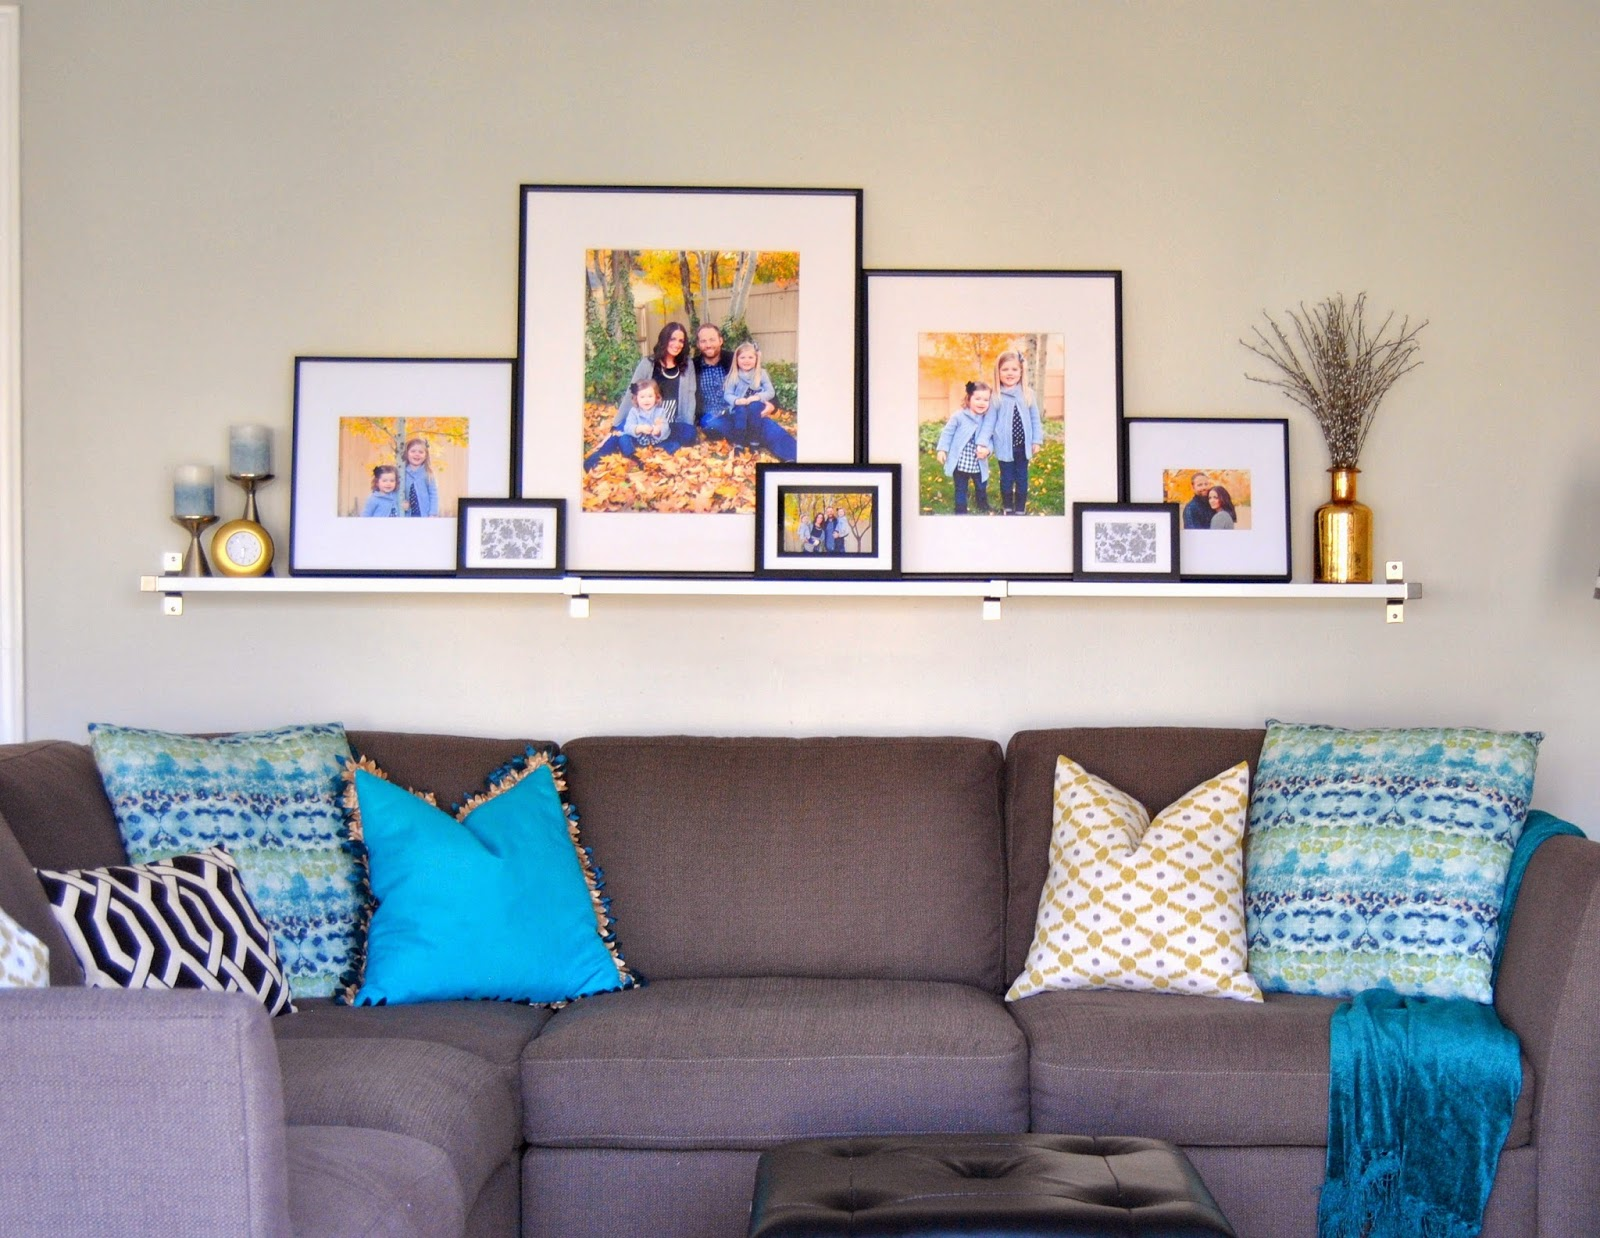 Studio 7 interior design the trick to the perfect for Gallery wall shelves